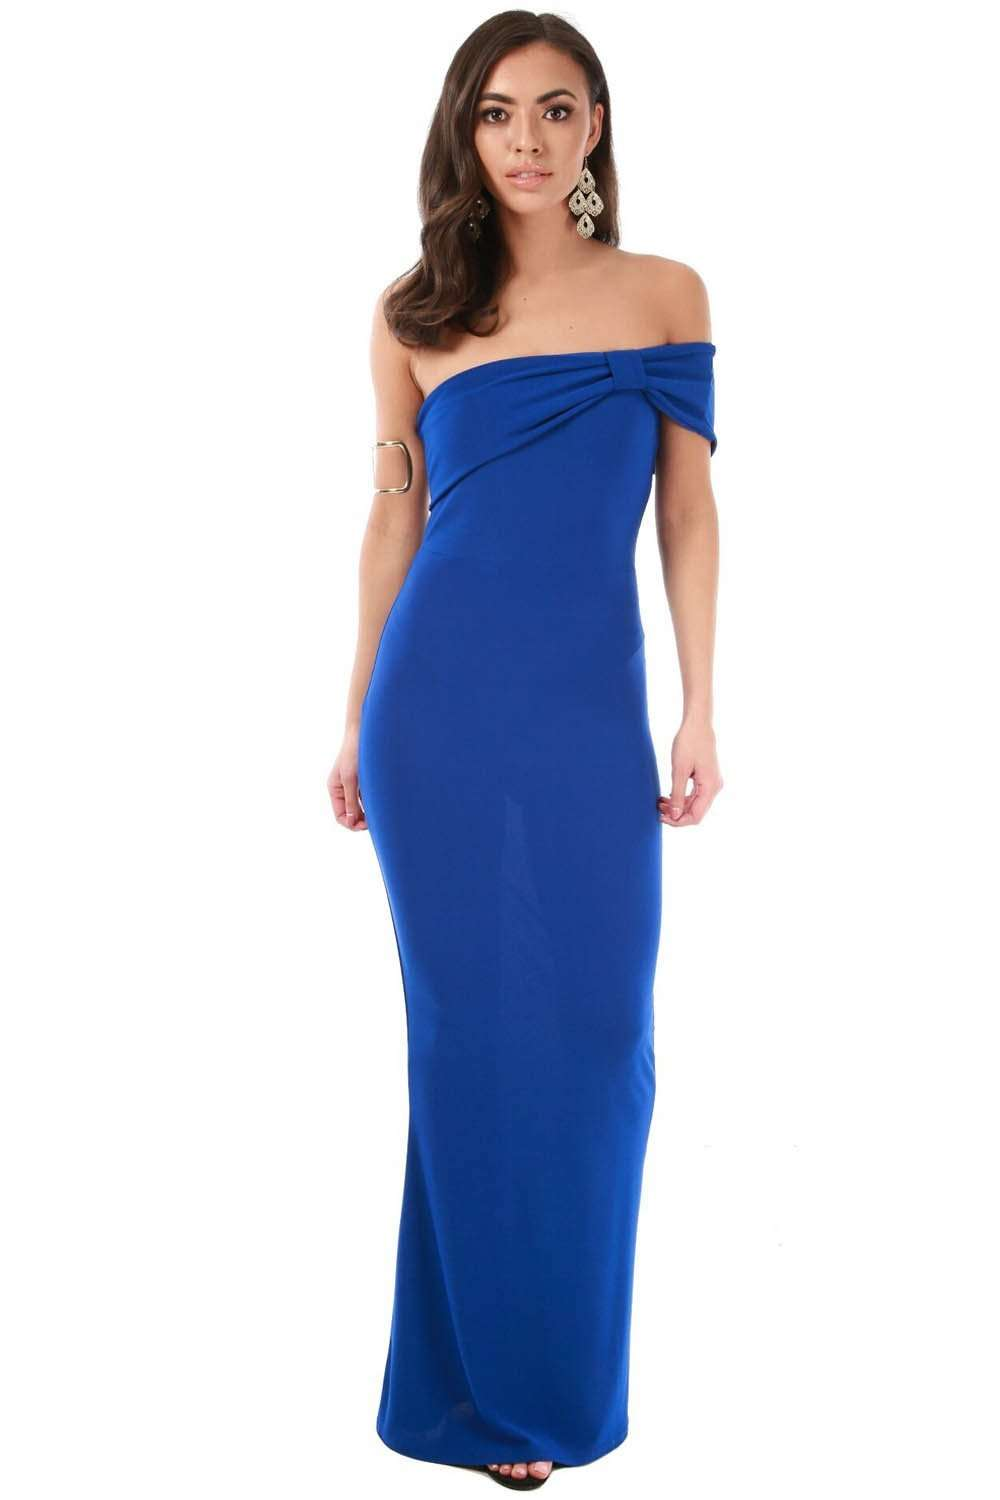 Blue Bardot Bow One Shoulder Fishtail Maxi Dress - bejealous-com